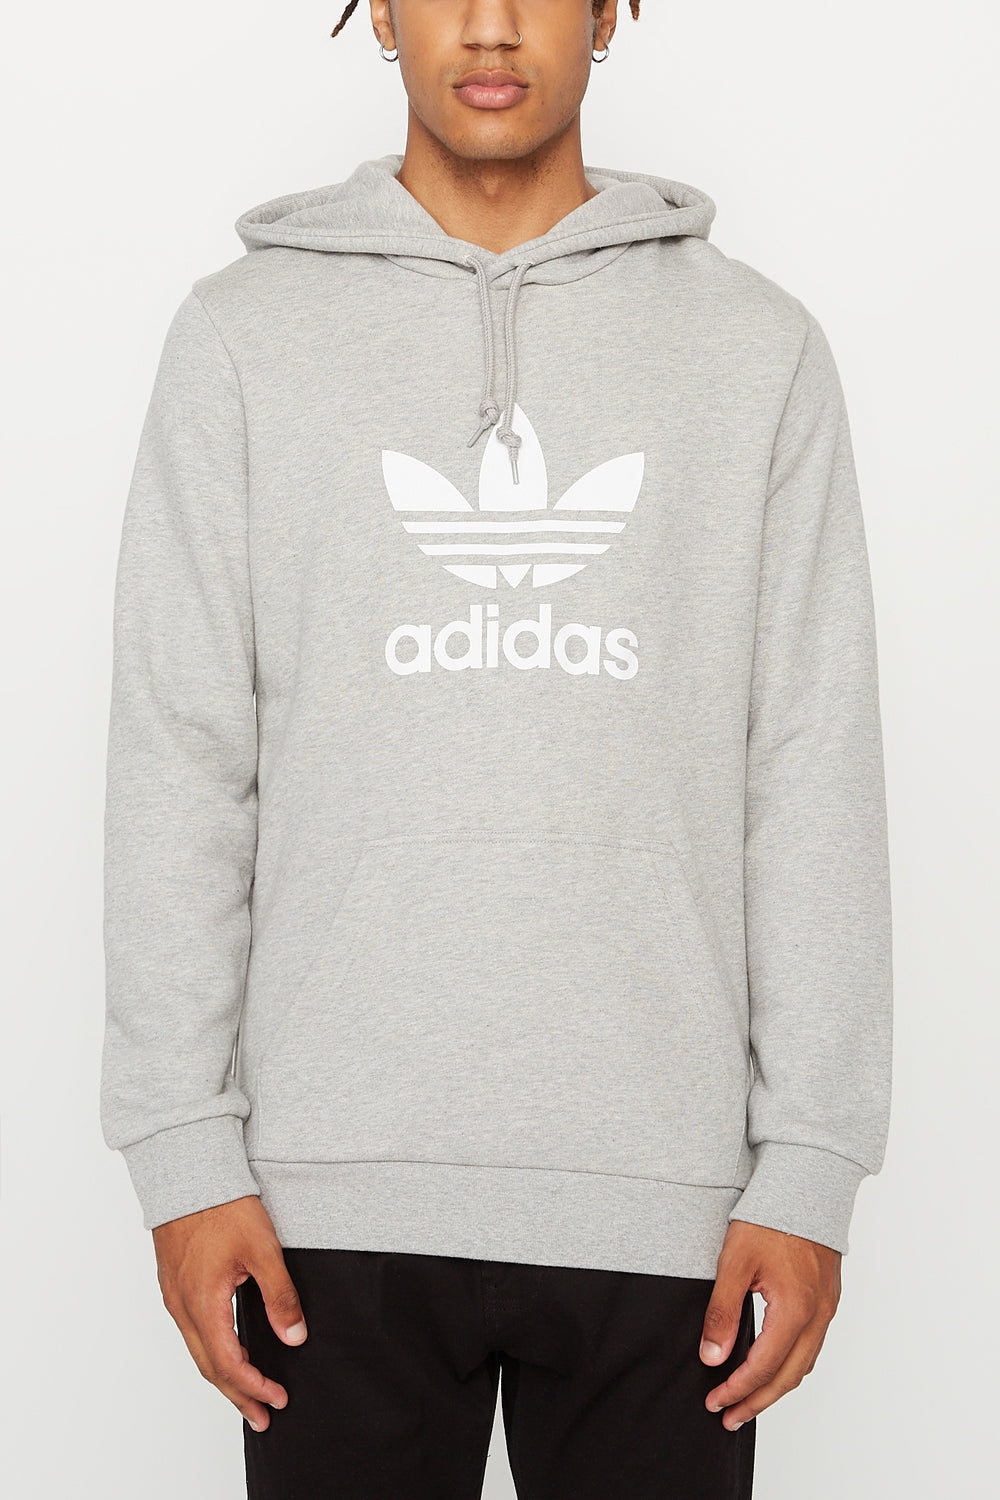 Adidas Mens Trefoil Grey Hoodie Heather Grey